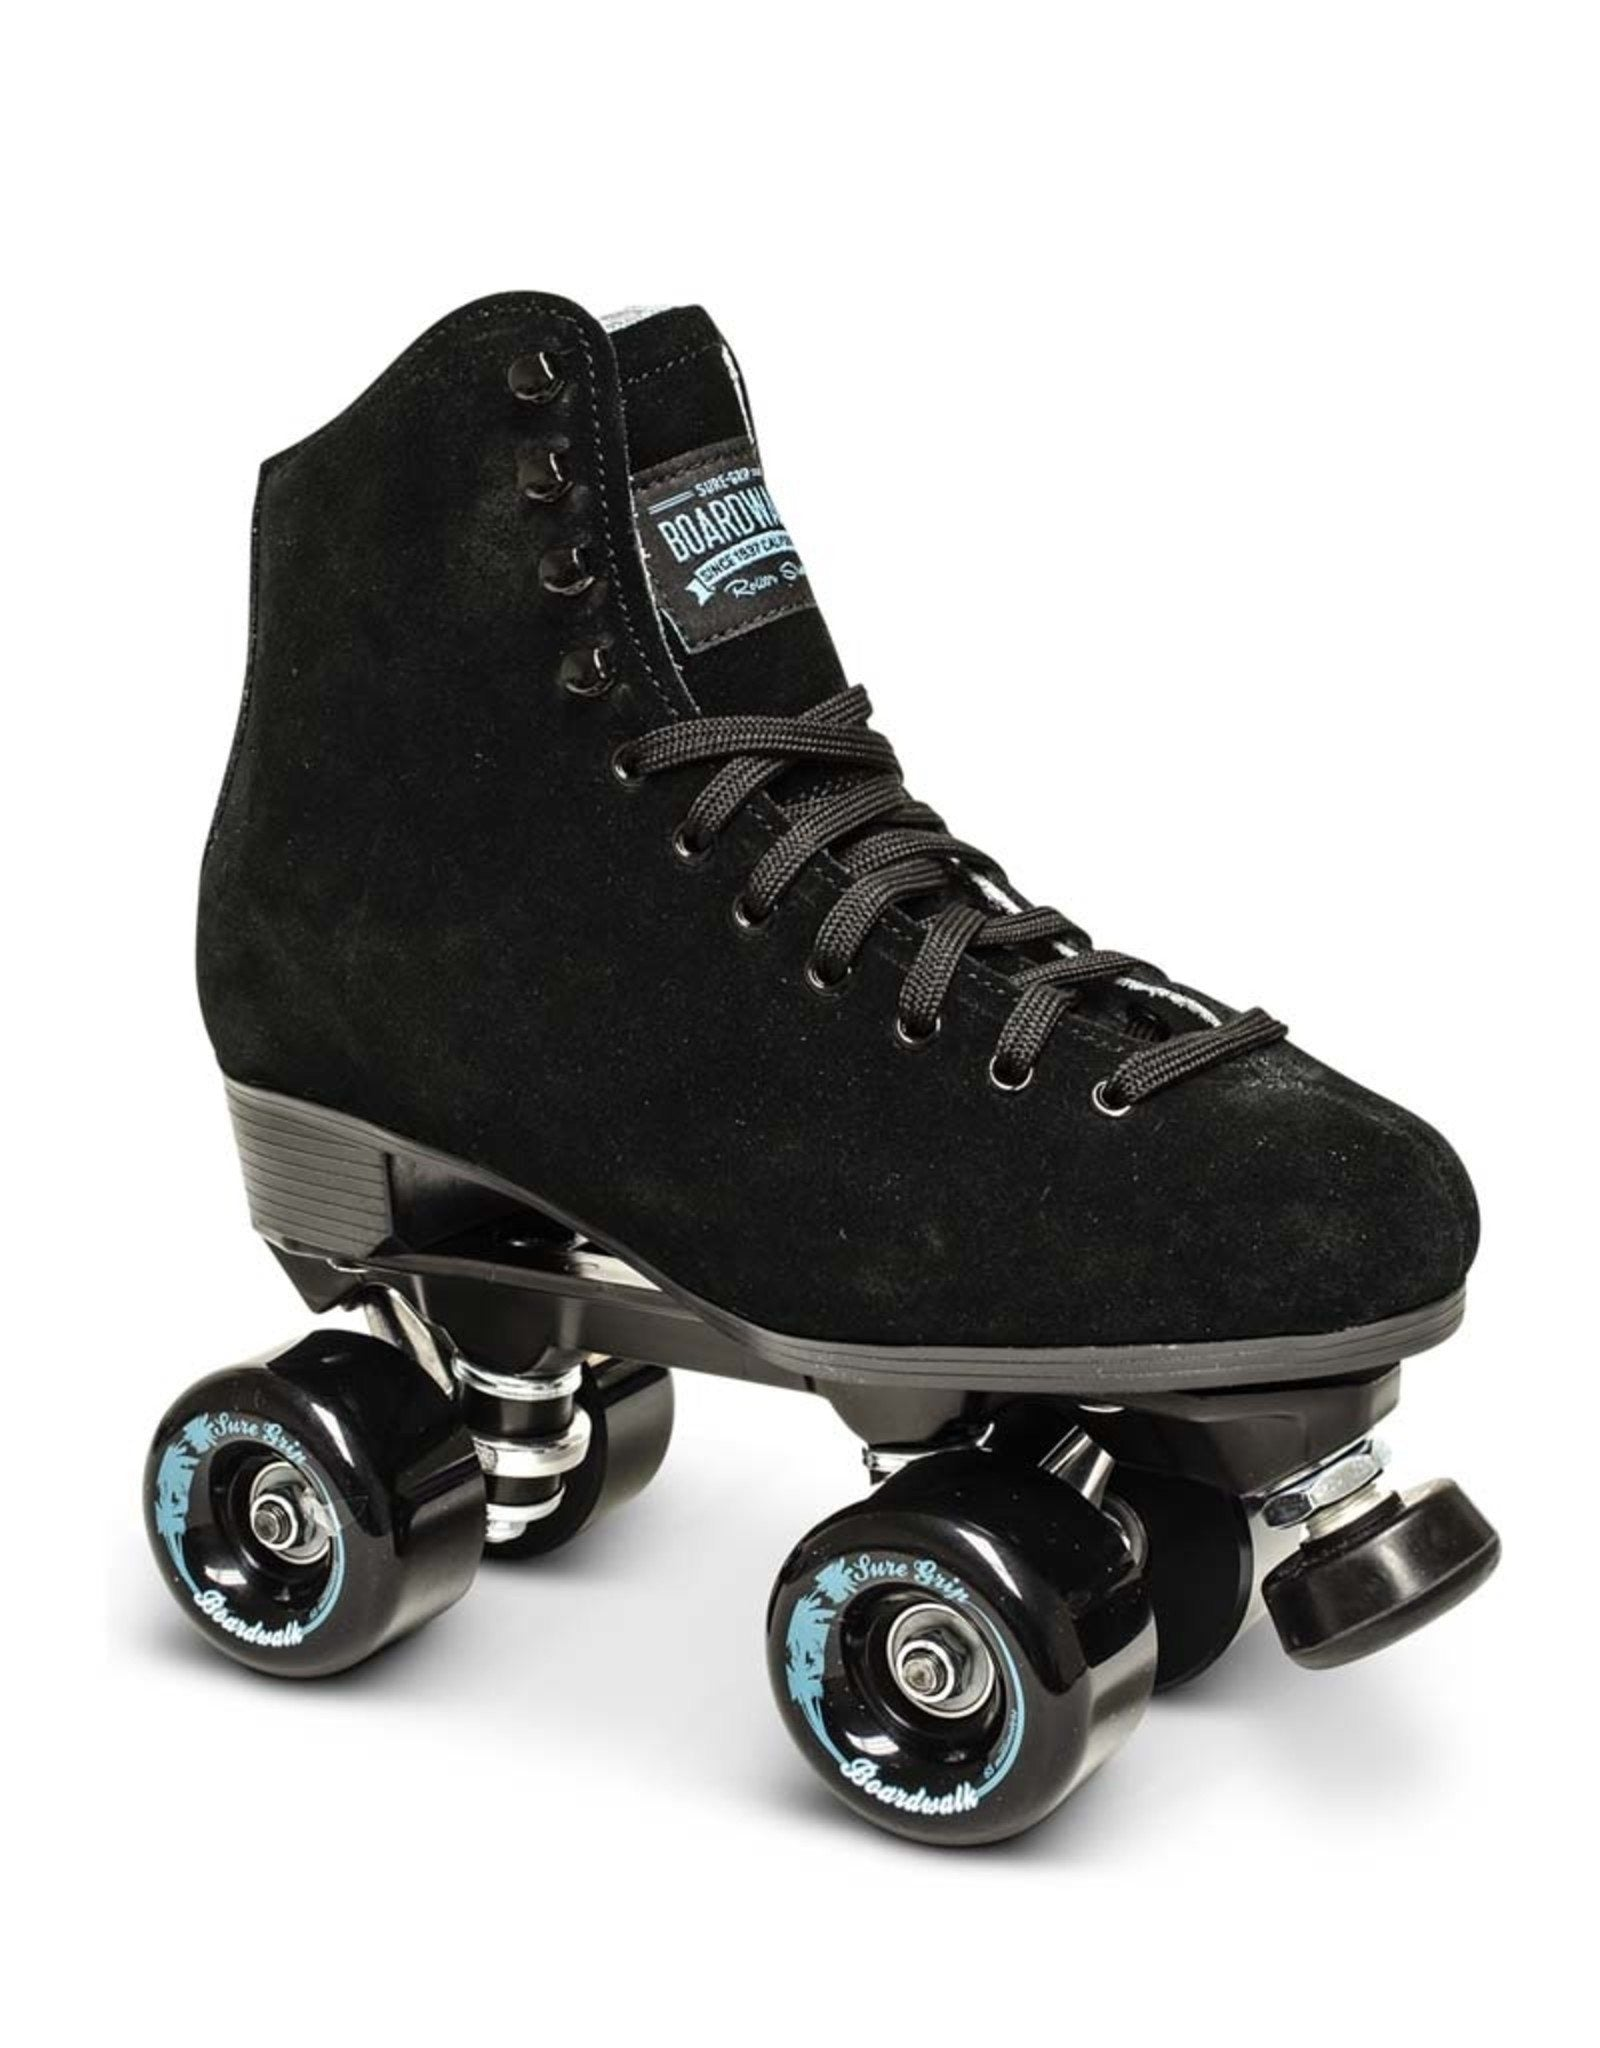 Sure-Grip Boardwalk Outdoor Roller Skate (Black)